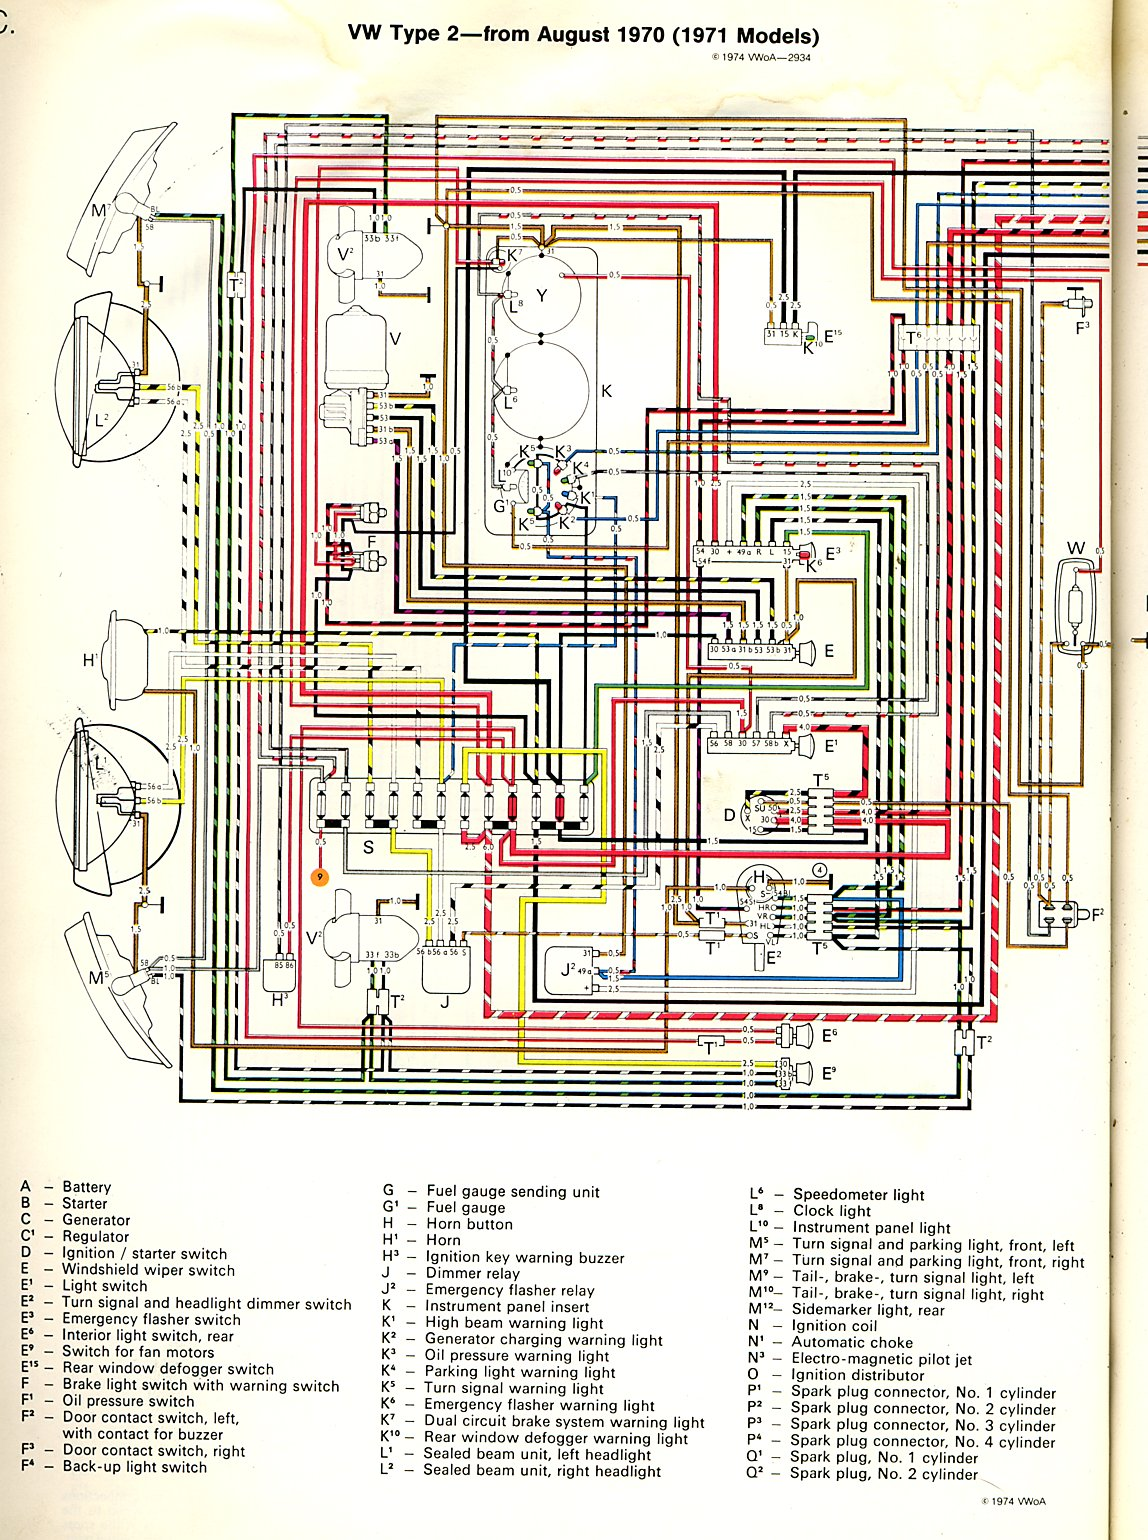 baybus_71a thesamba com type 2 wiring diagrams 1971 camaro wiring diagram at gsmportal.co